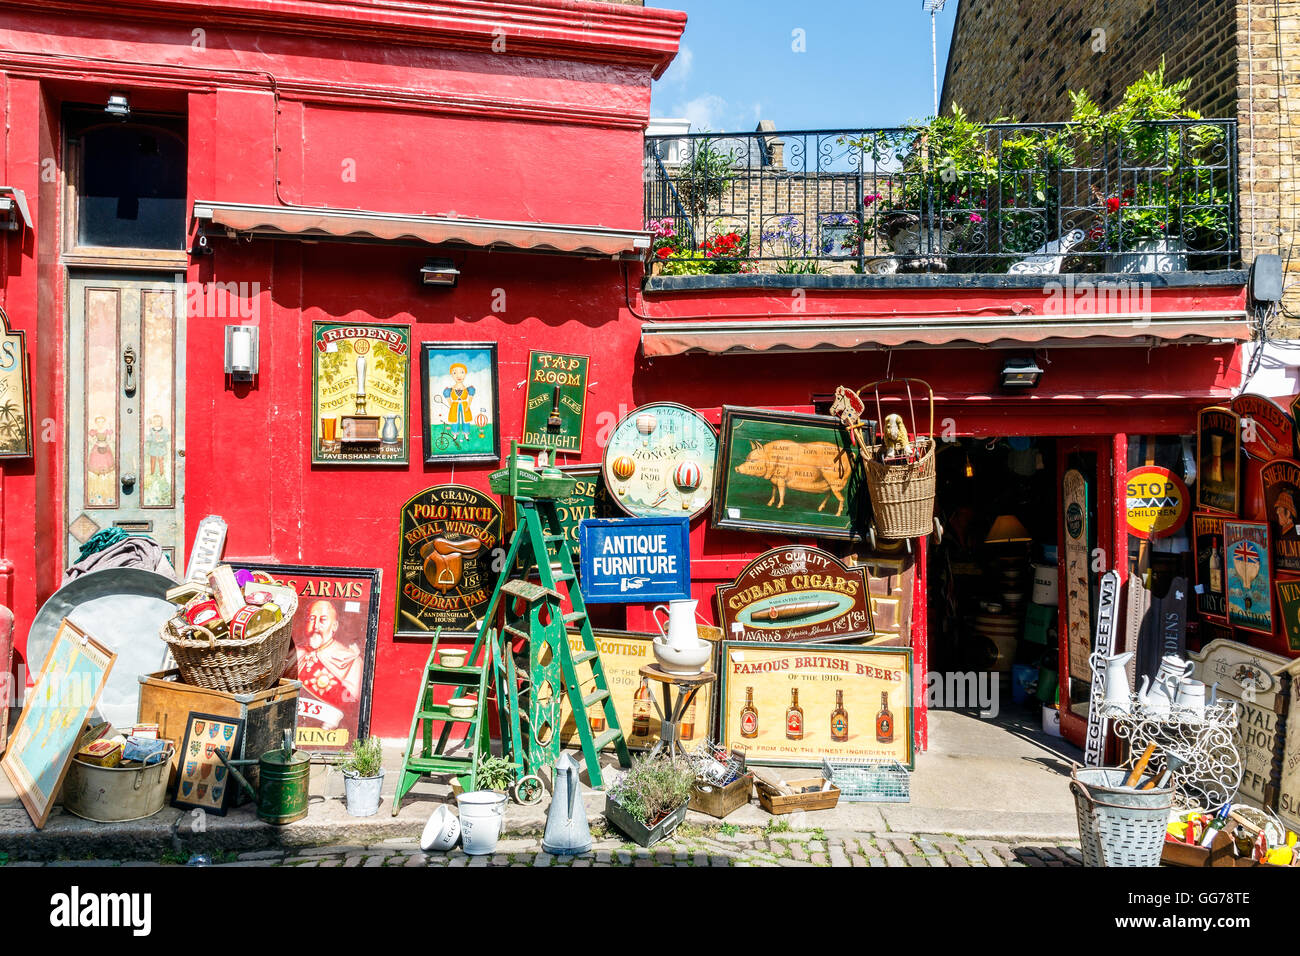 Antique shop at Portobello Road Market in Notting Hill, London - Stock Image